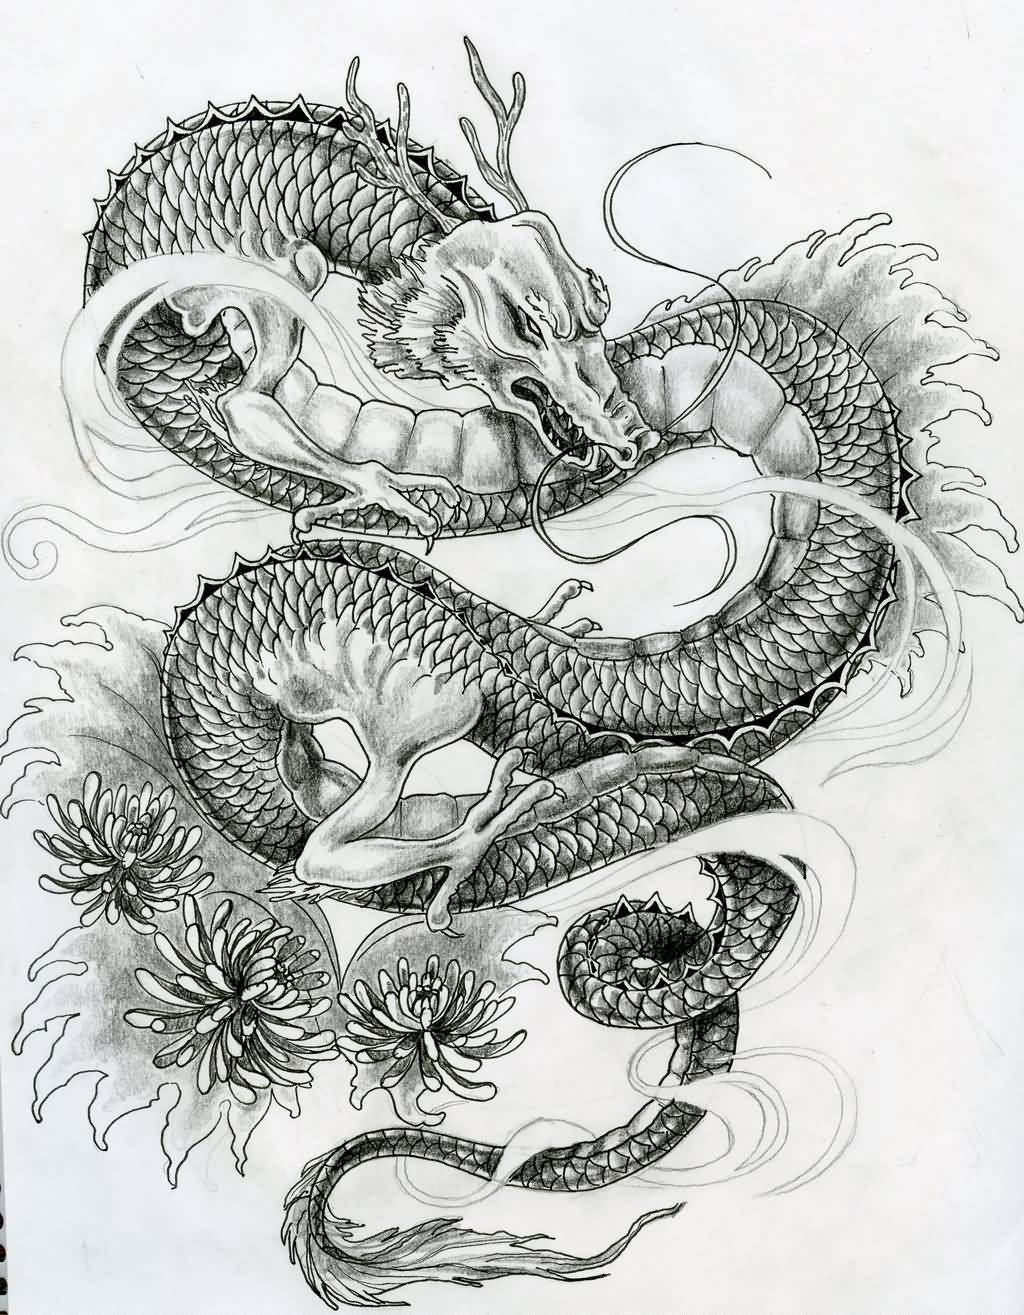 632 Tattoos Best Japanese Tattoo Designs Cultural Japanese Tattoos Page 2 Japanese Dragon Tattoo Dragon Tattoos For Men Dragon Tattoo